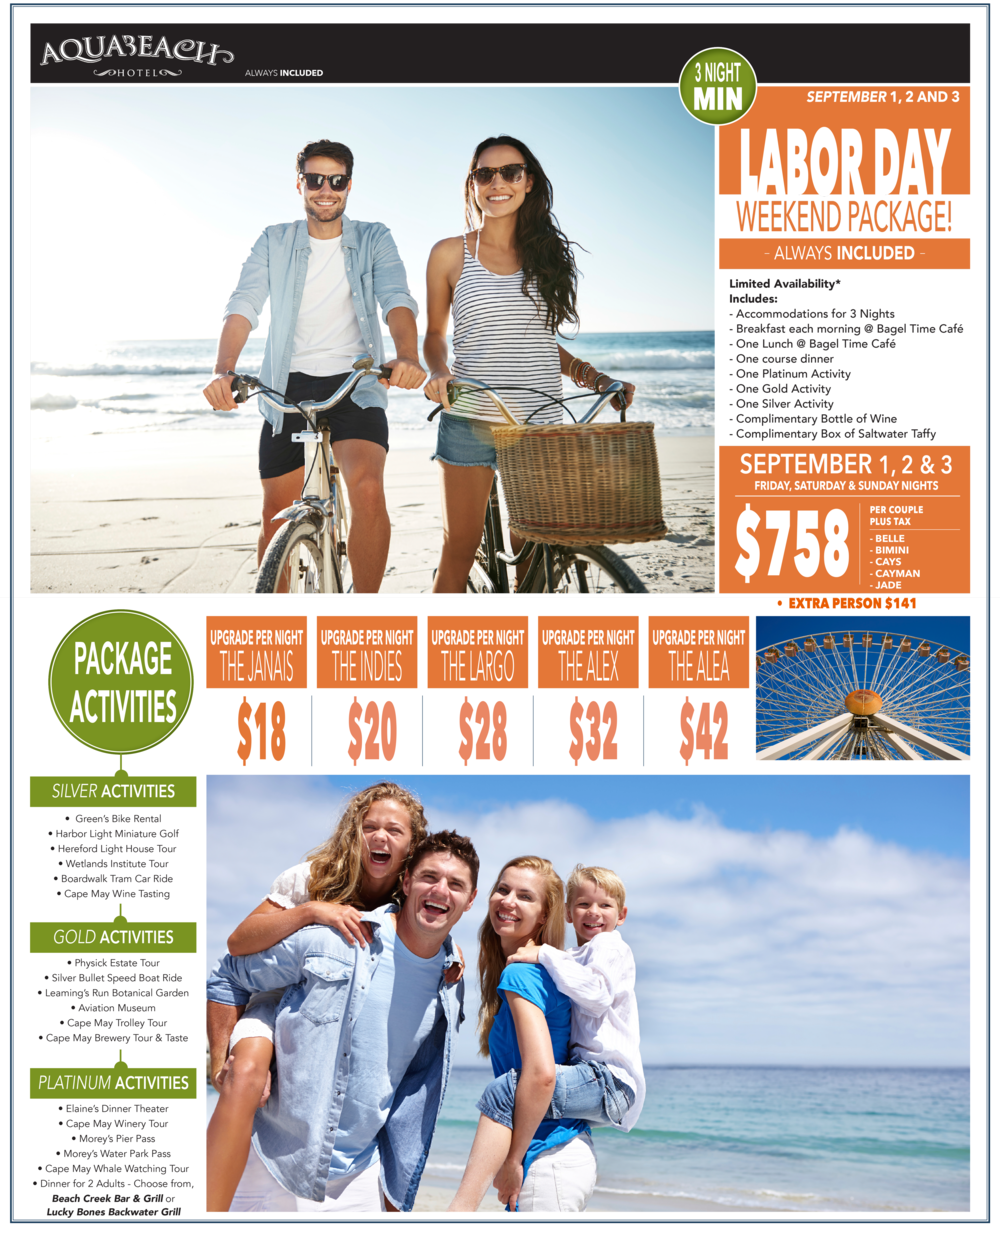 LABOR DAY PACKAGE - September 1, 2 and 3.  upgrades are AVAILABLE! POLICIES:  MUST STAY 3 NIGHTS.  package PRICES ARE SUBJECT TO change.  SORRY, the CONDOMINIUM RESERVATIONS ARE NOT INCLUDED with the labor day package.  THE AQUA BEACH HOTEL RESERVES THE RIGHT TO REVISE OR CANCEL labor day package AT ANY TIME.  a minium deposit of $200 is needed to make a labor day package reservation.  some ACTIVITIES may not be AVAILABLE.  Package reservations must be called in directly to the THE AQUA BEACH HOTEL, 1-800-247-4776 / 609-522-6507.